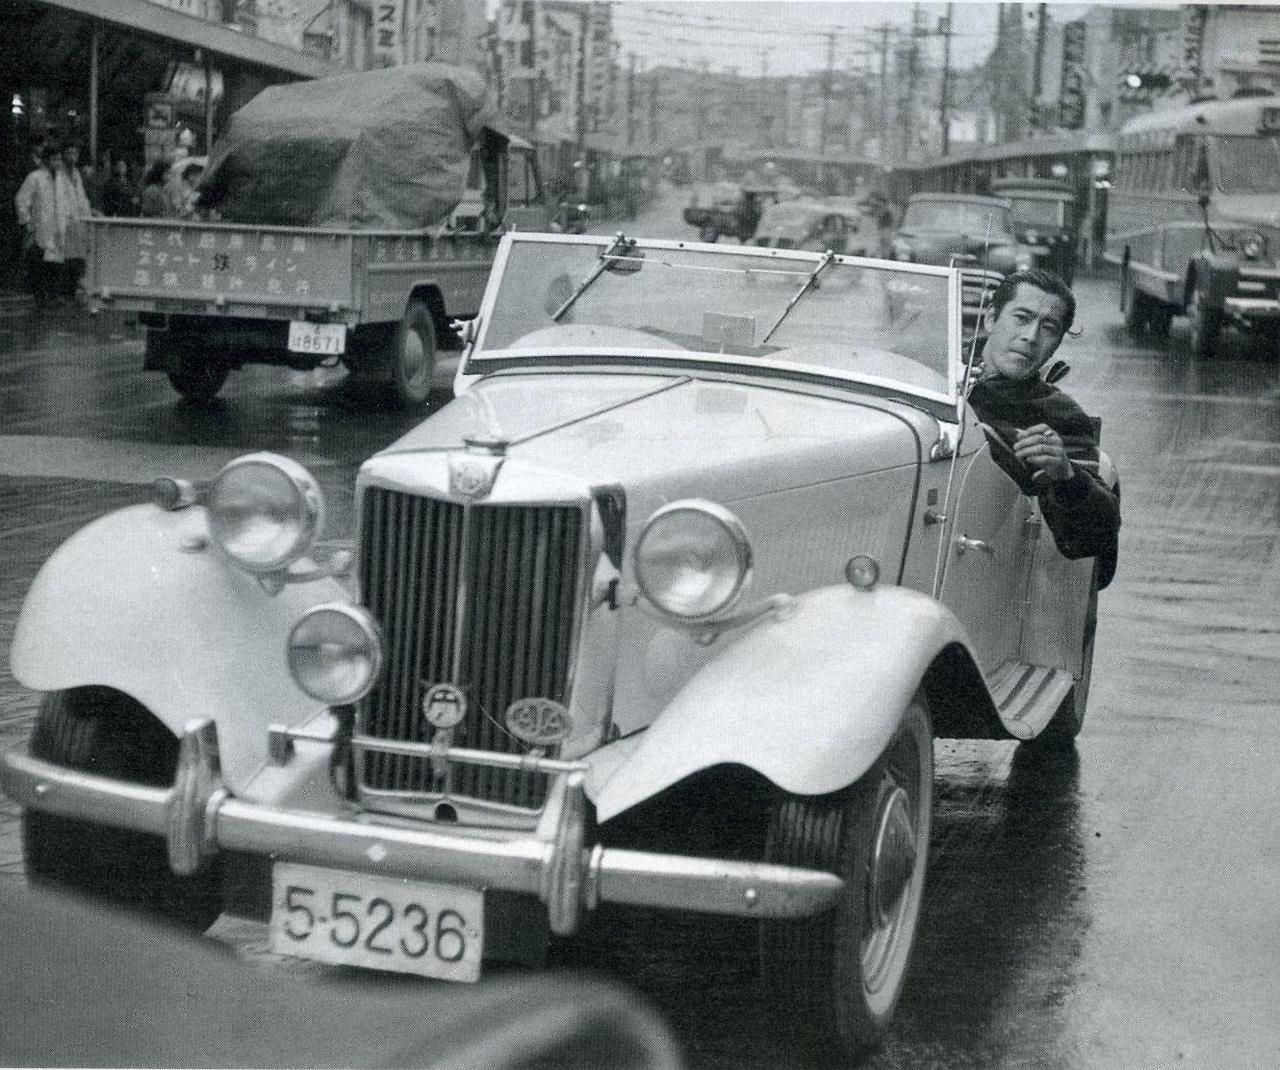 Mifune Toshiro 三船敏郎 (1920-1997) driving his MG-TD in Shibuya 渋谷, Tokyo, Japan - 1958